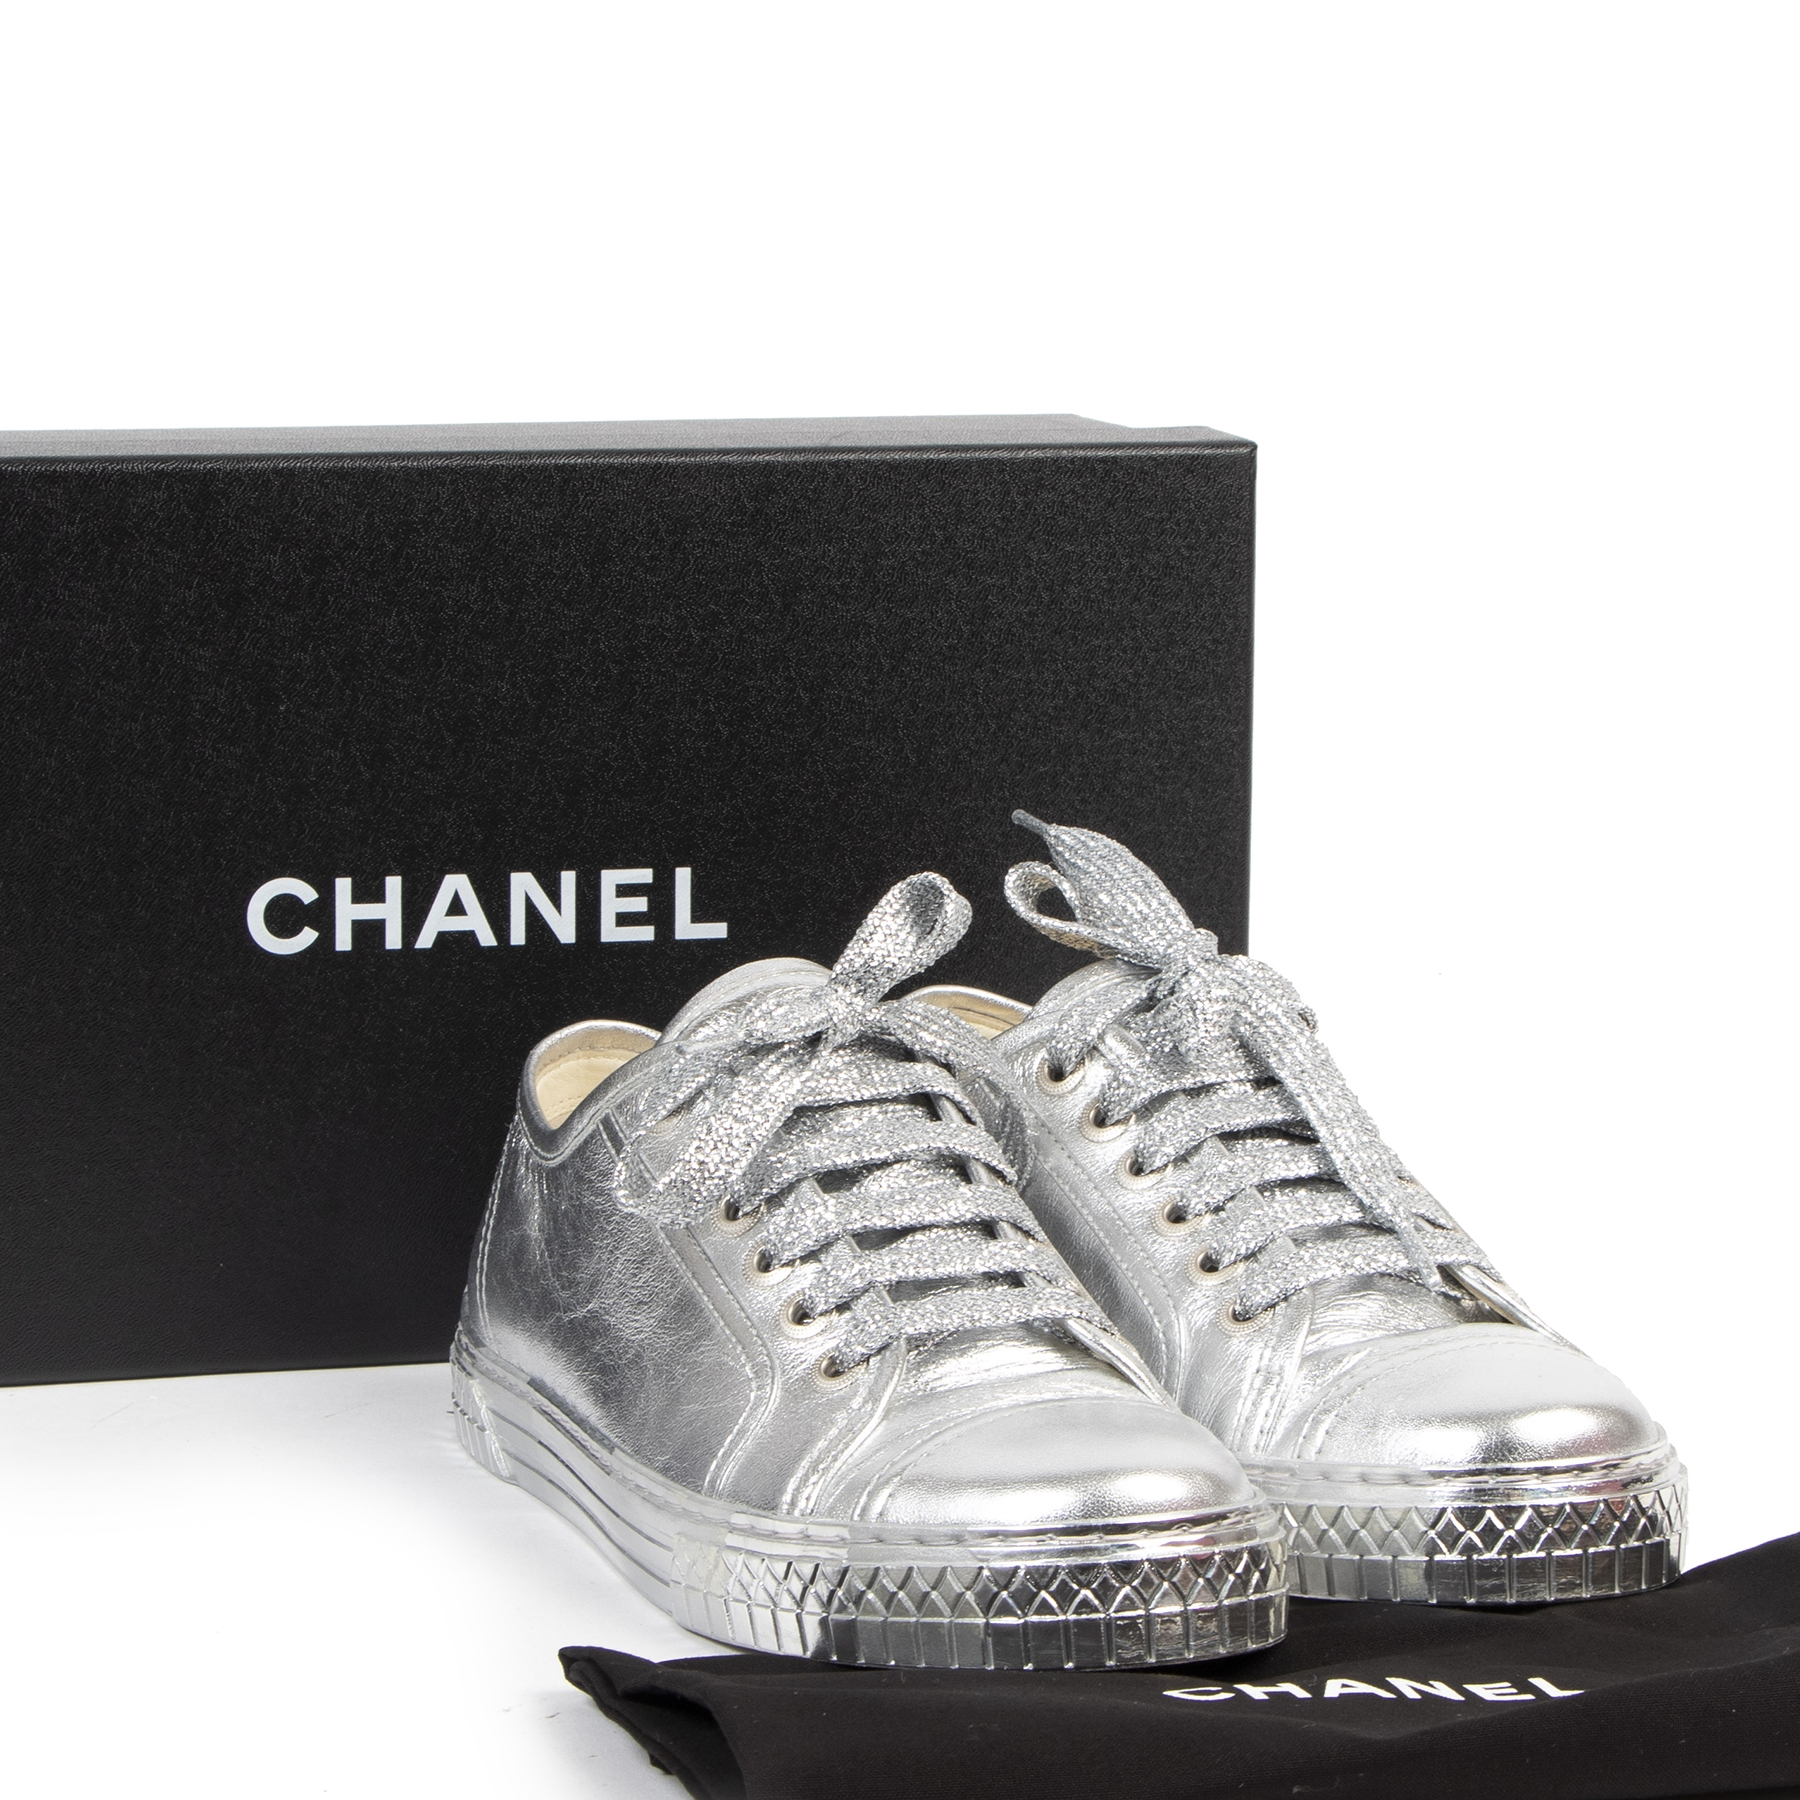 Chanel Silver Leather Sneakers - size 36.5 - for the best price at labellov